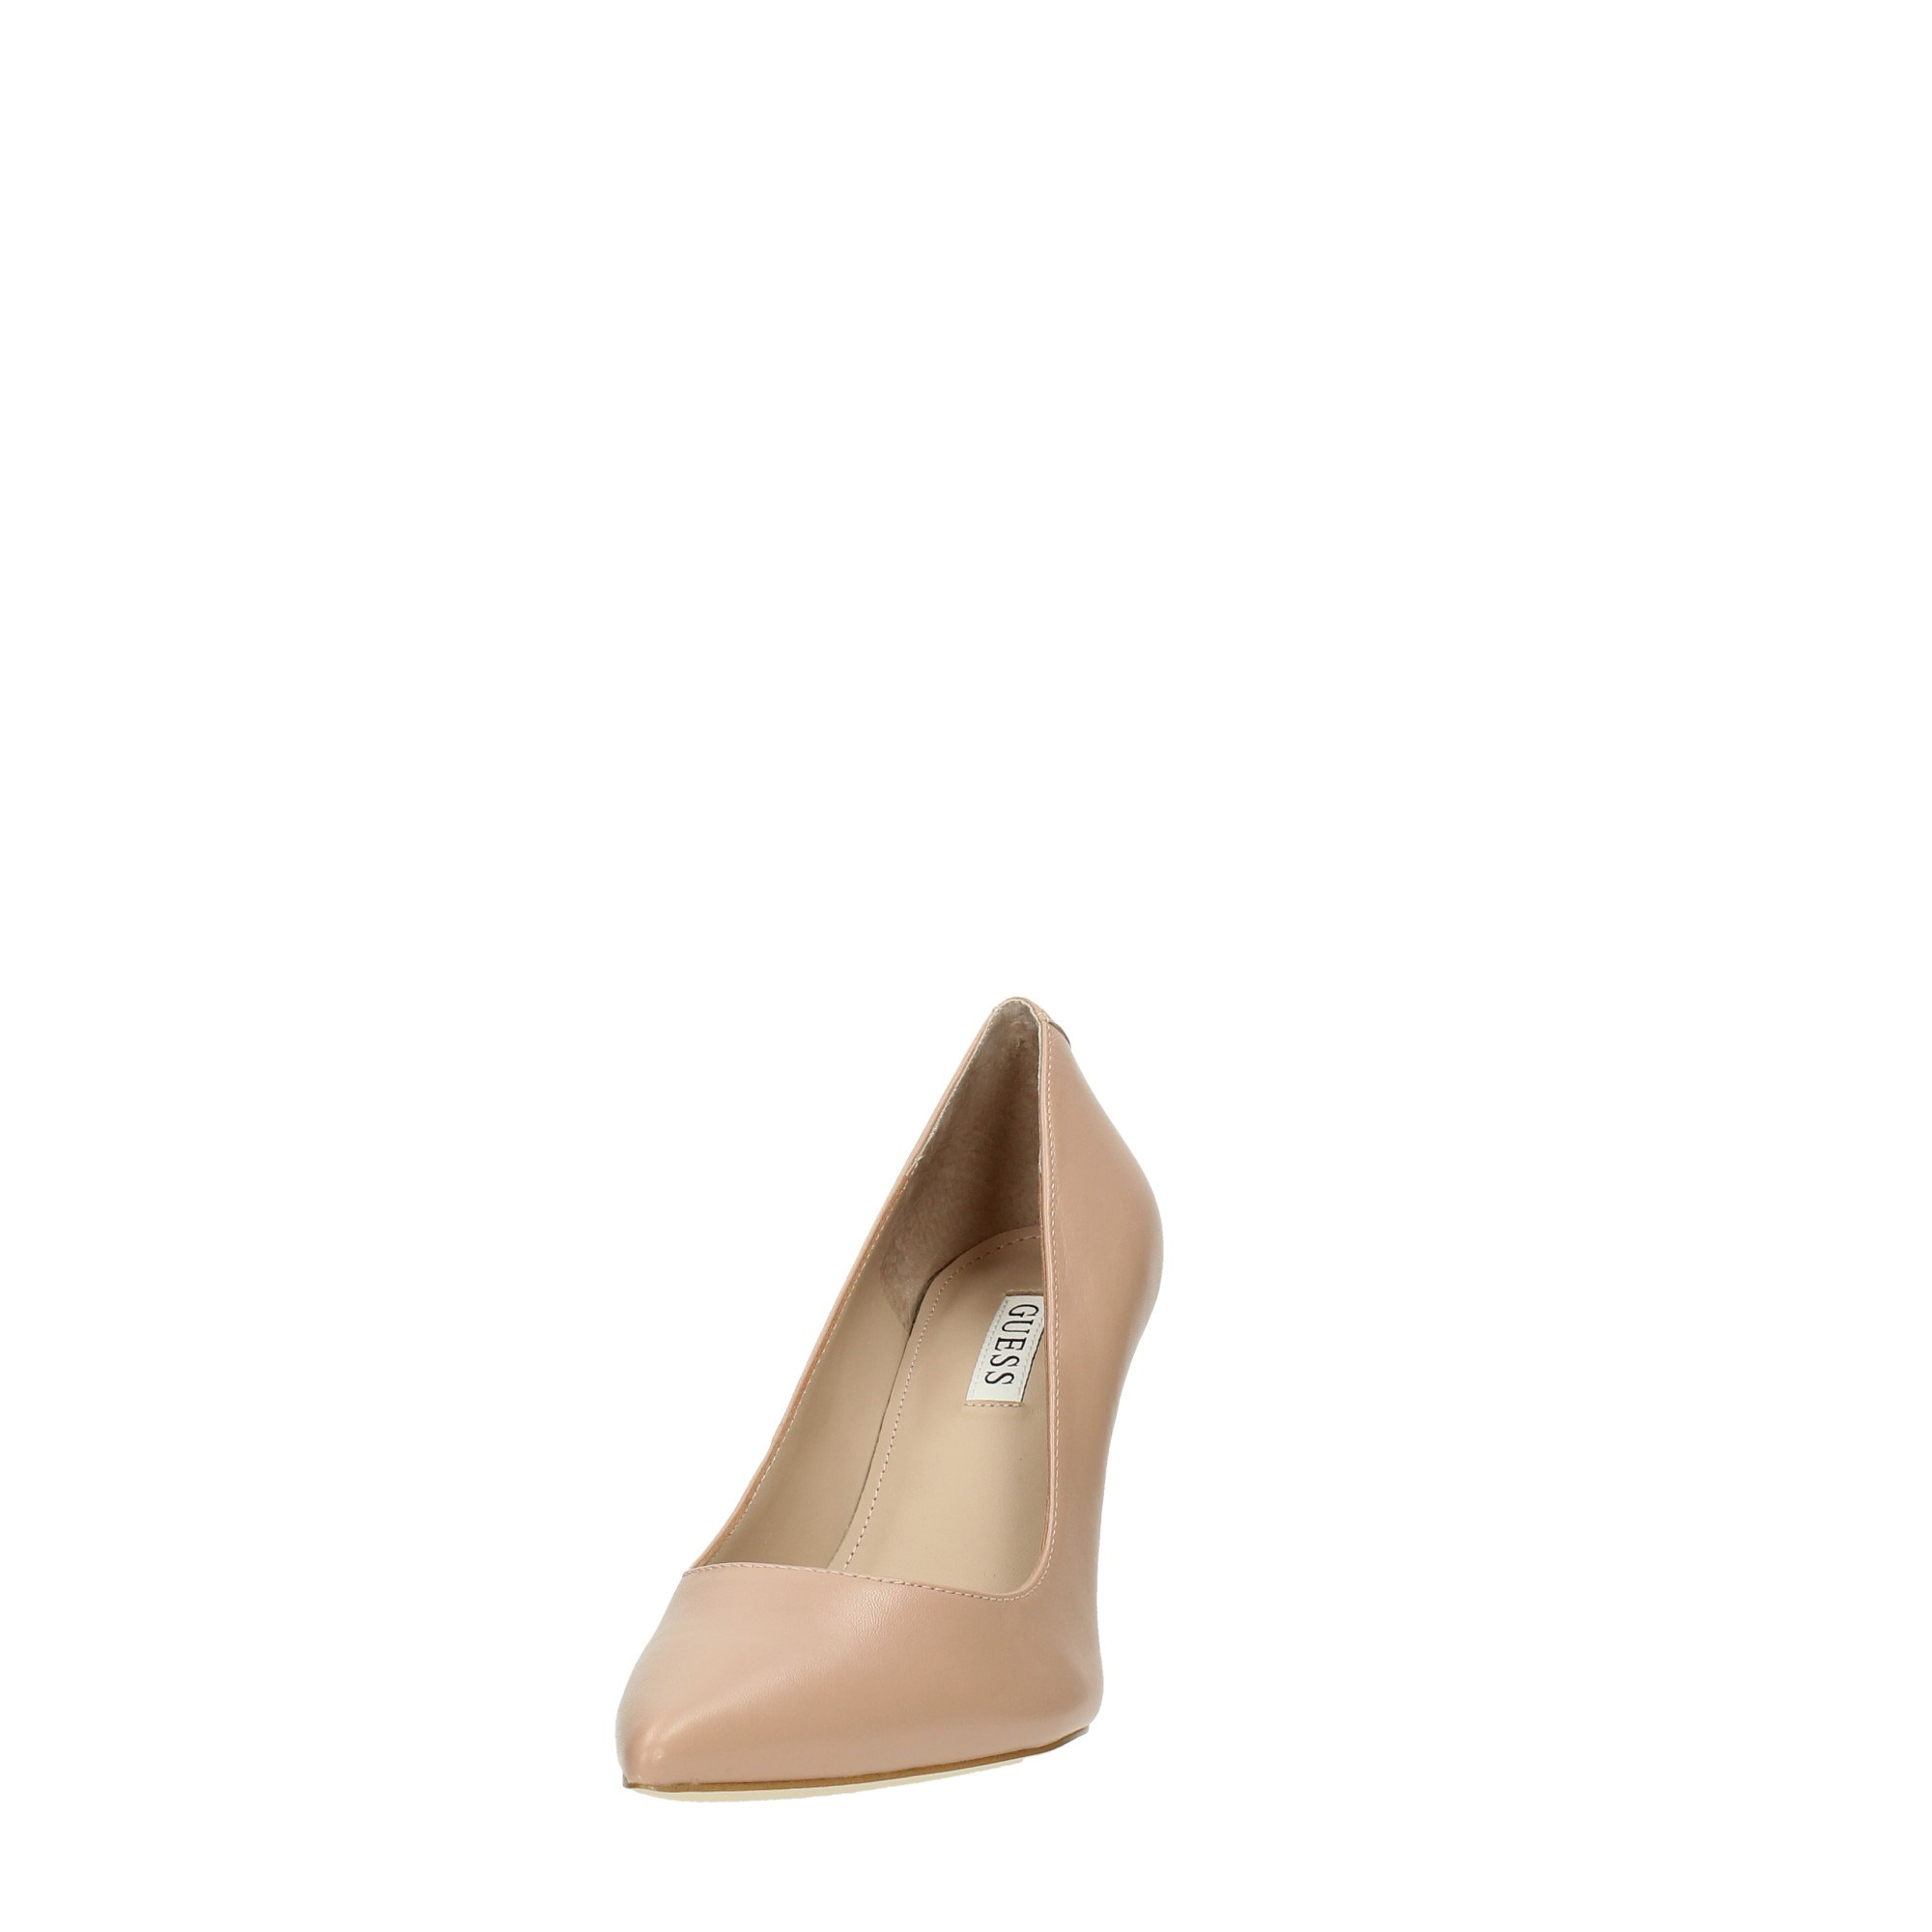 Guess Shoes Women Cleavage And Heeled Shoes Beige FL7DAE